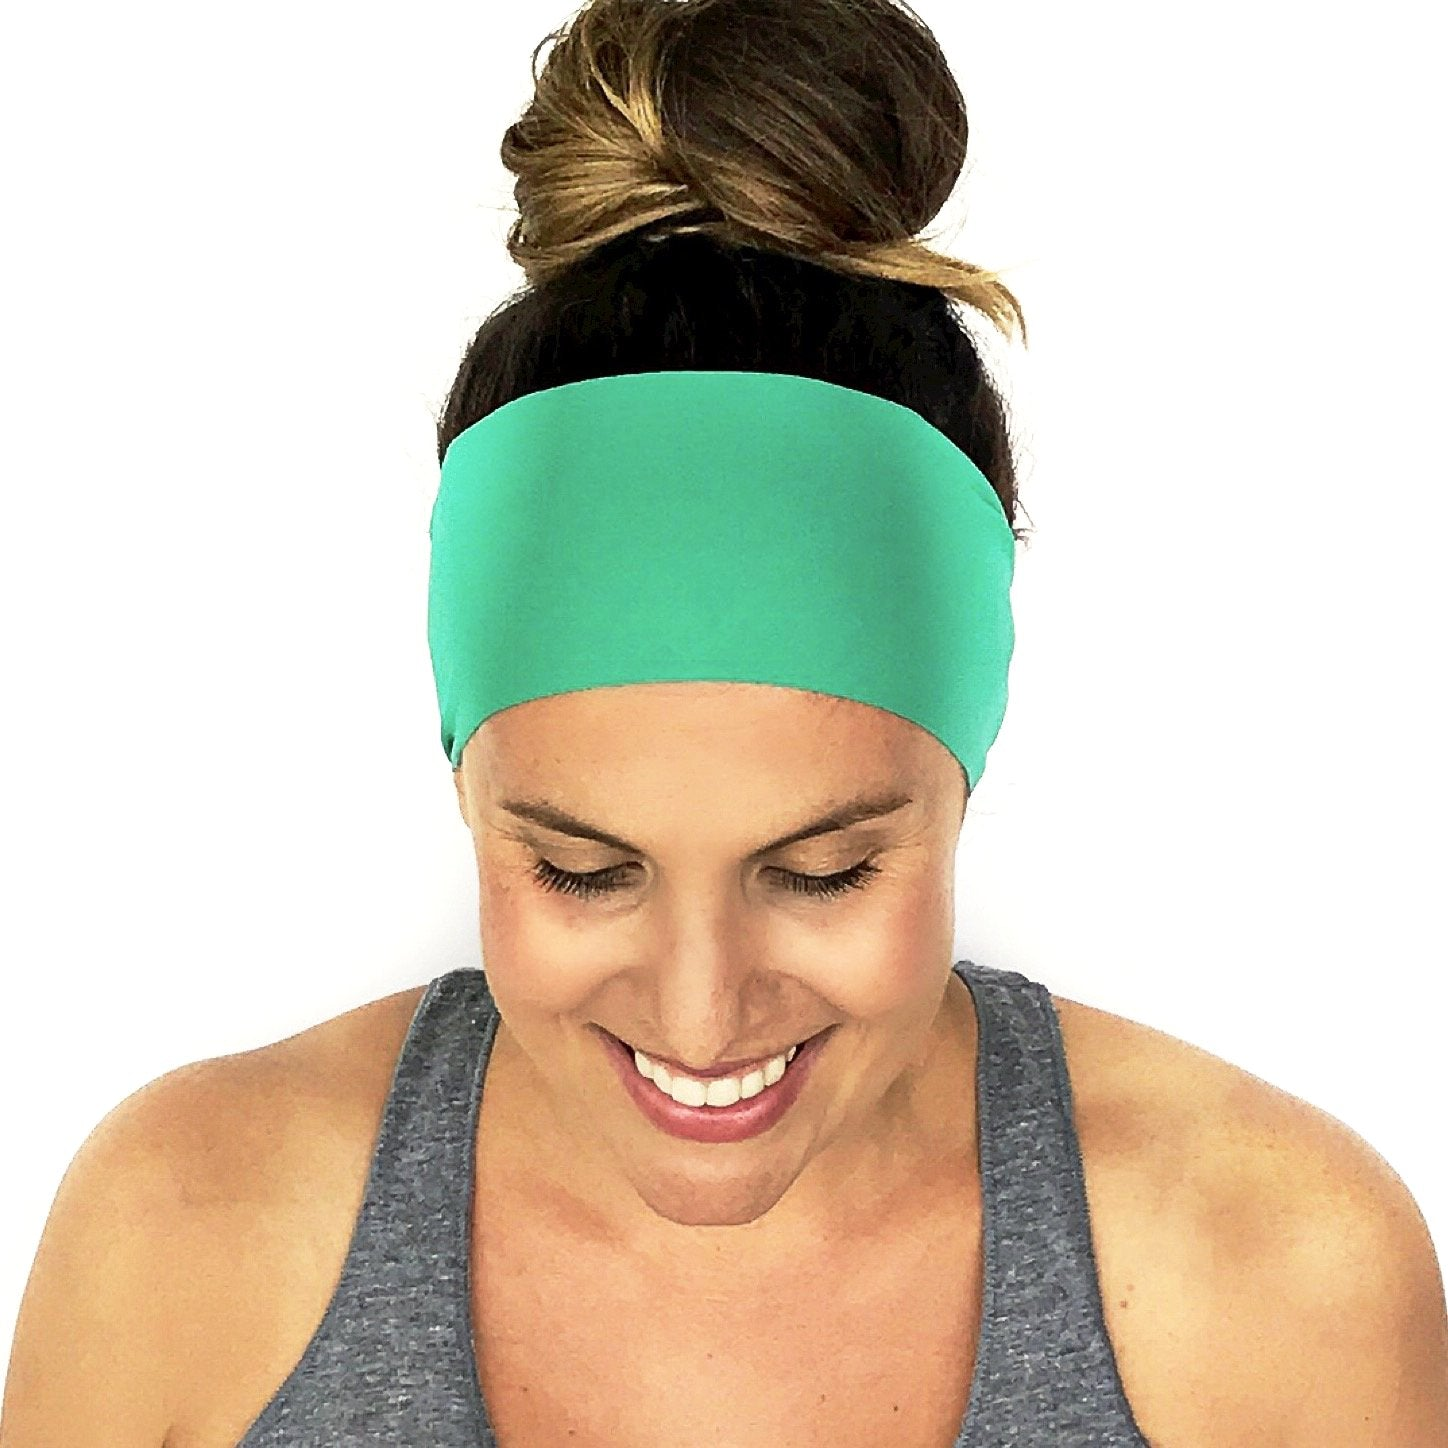 Seafoam Workout Headband